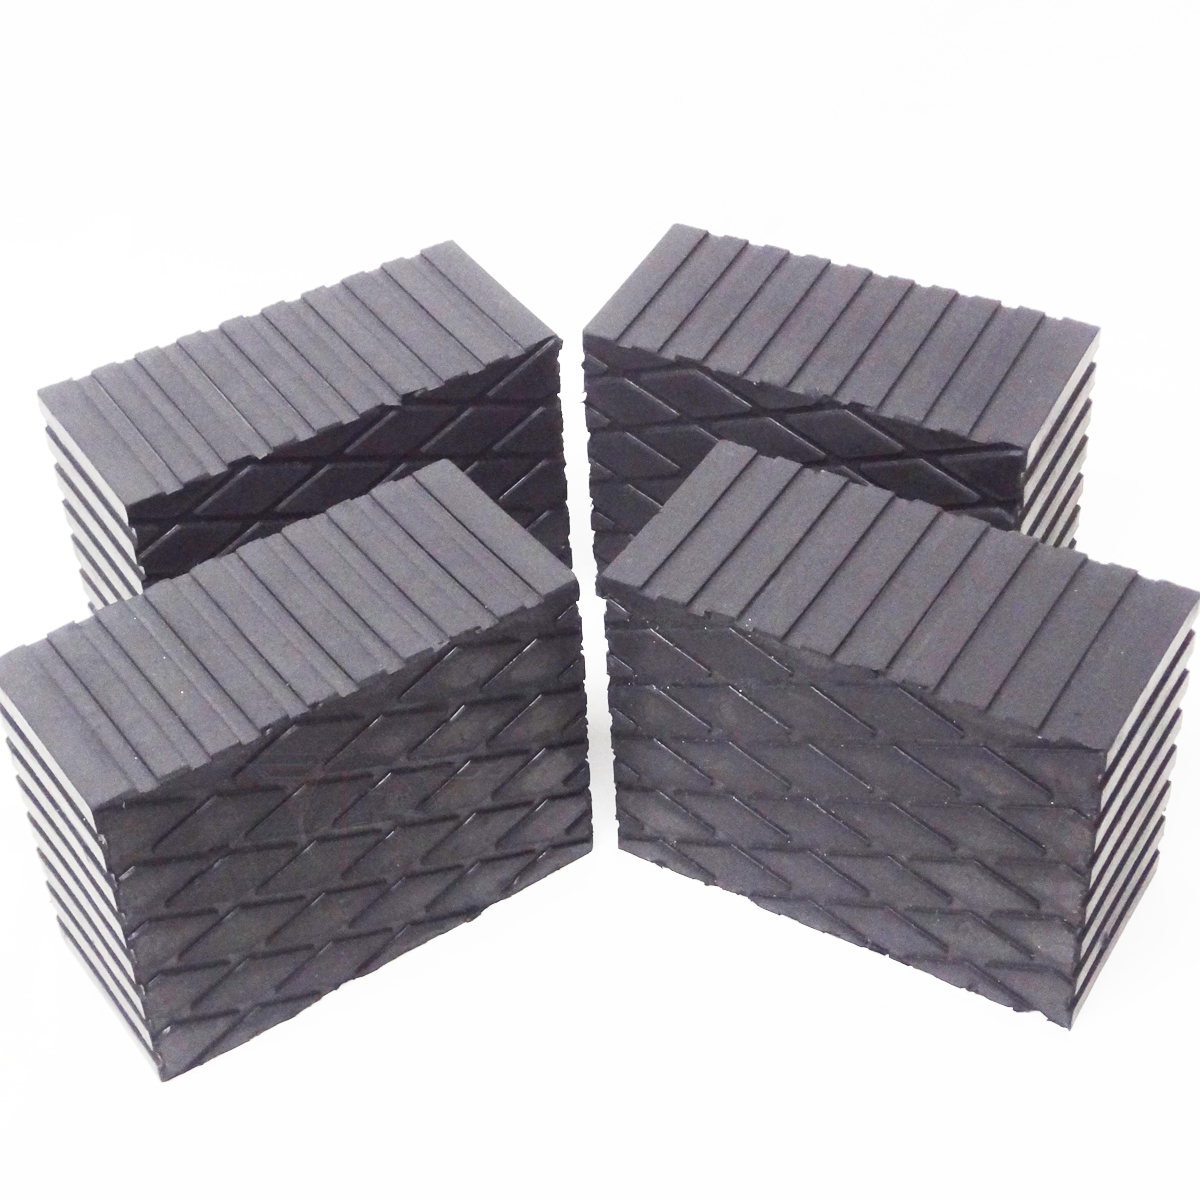 3 Quot Tall Rubber Stack Blocks For Any Auto Lift Or Jack